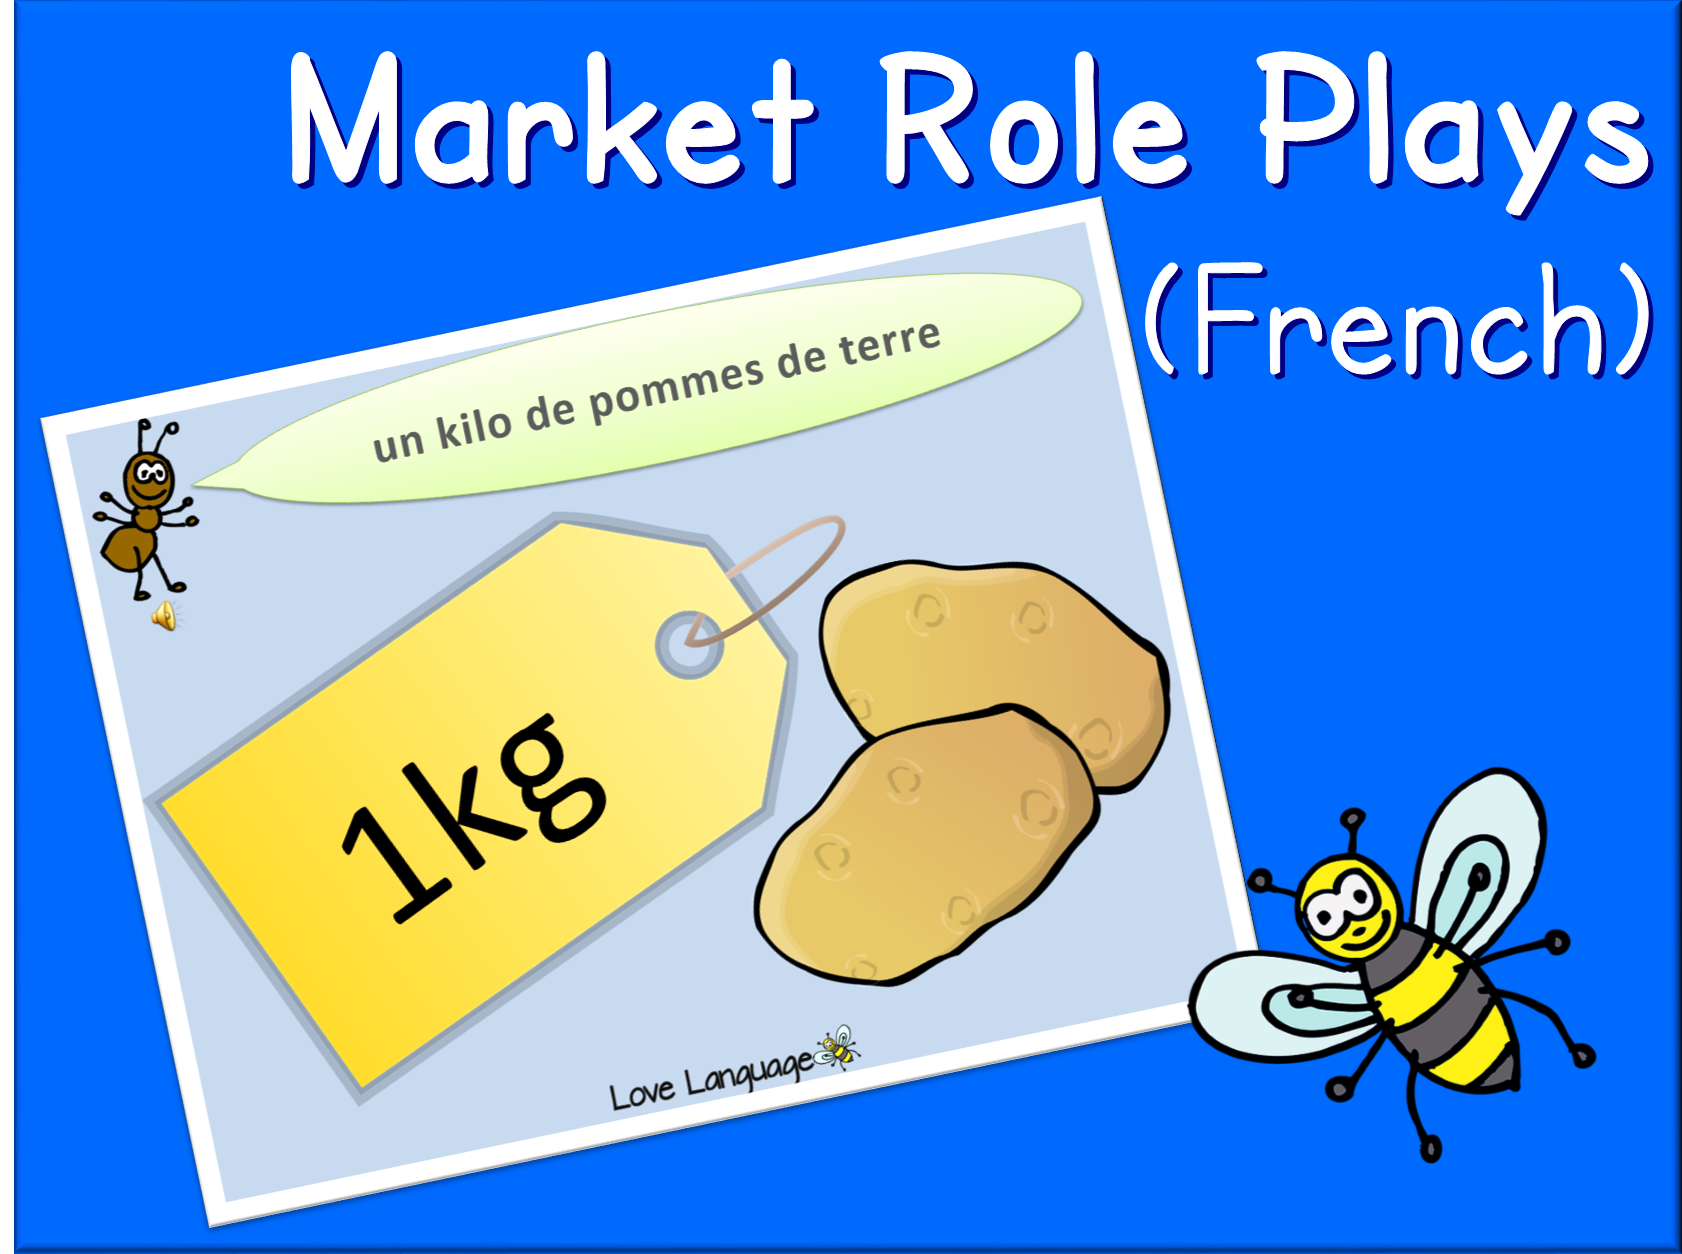 Market role plays in French